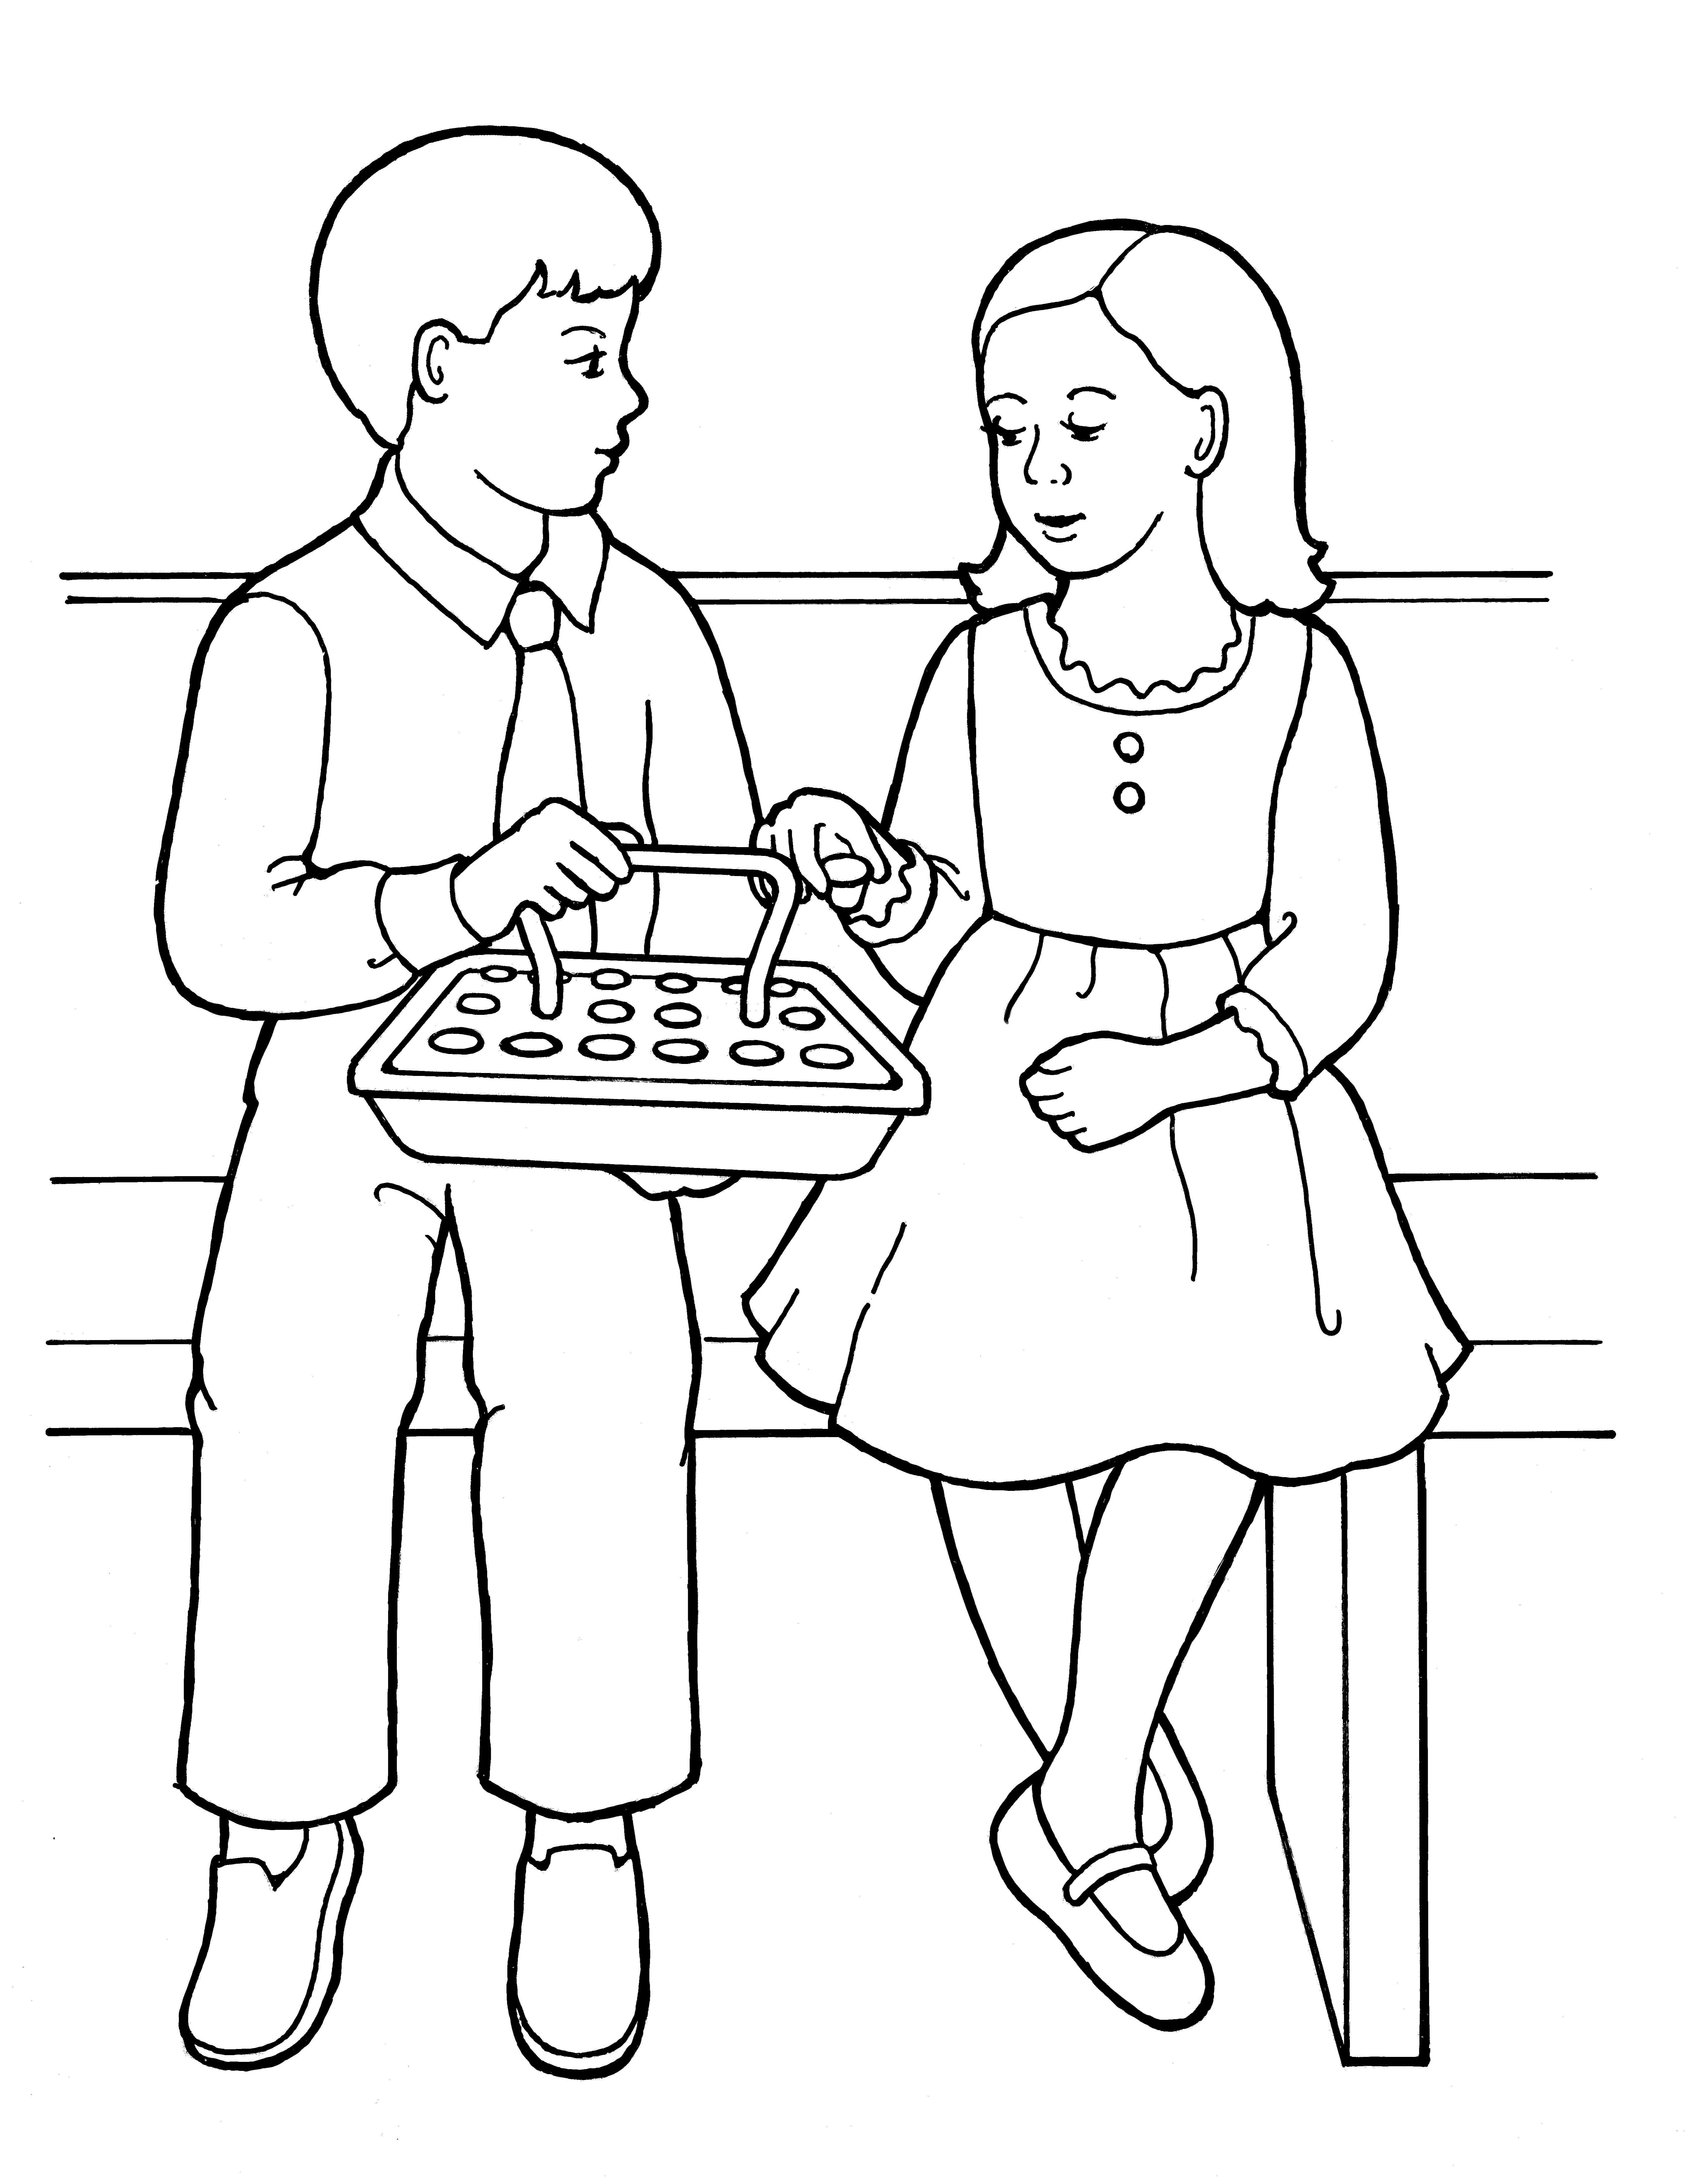 An illustration of a young girl and young boy partaking of the sacrament water, from the nursery manual Behold Your Little Ones (2008), page 115.